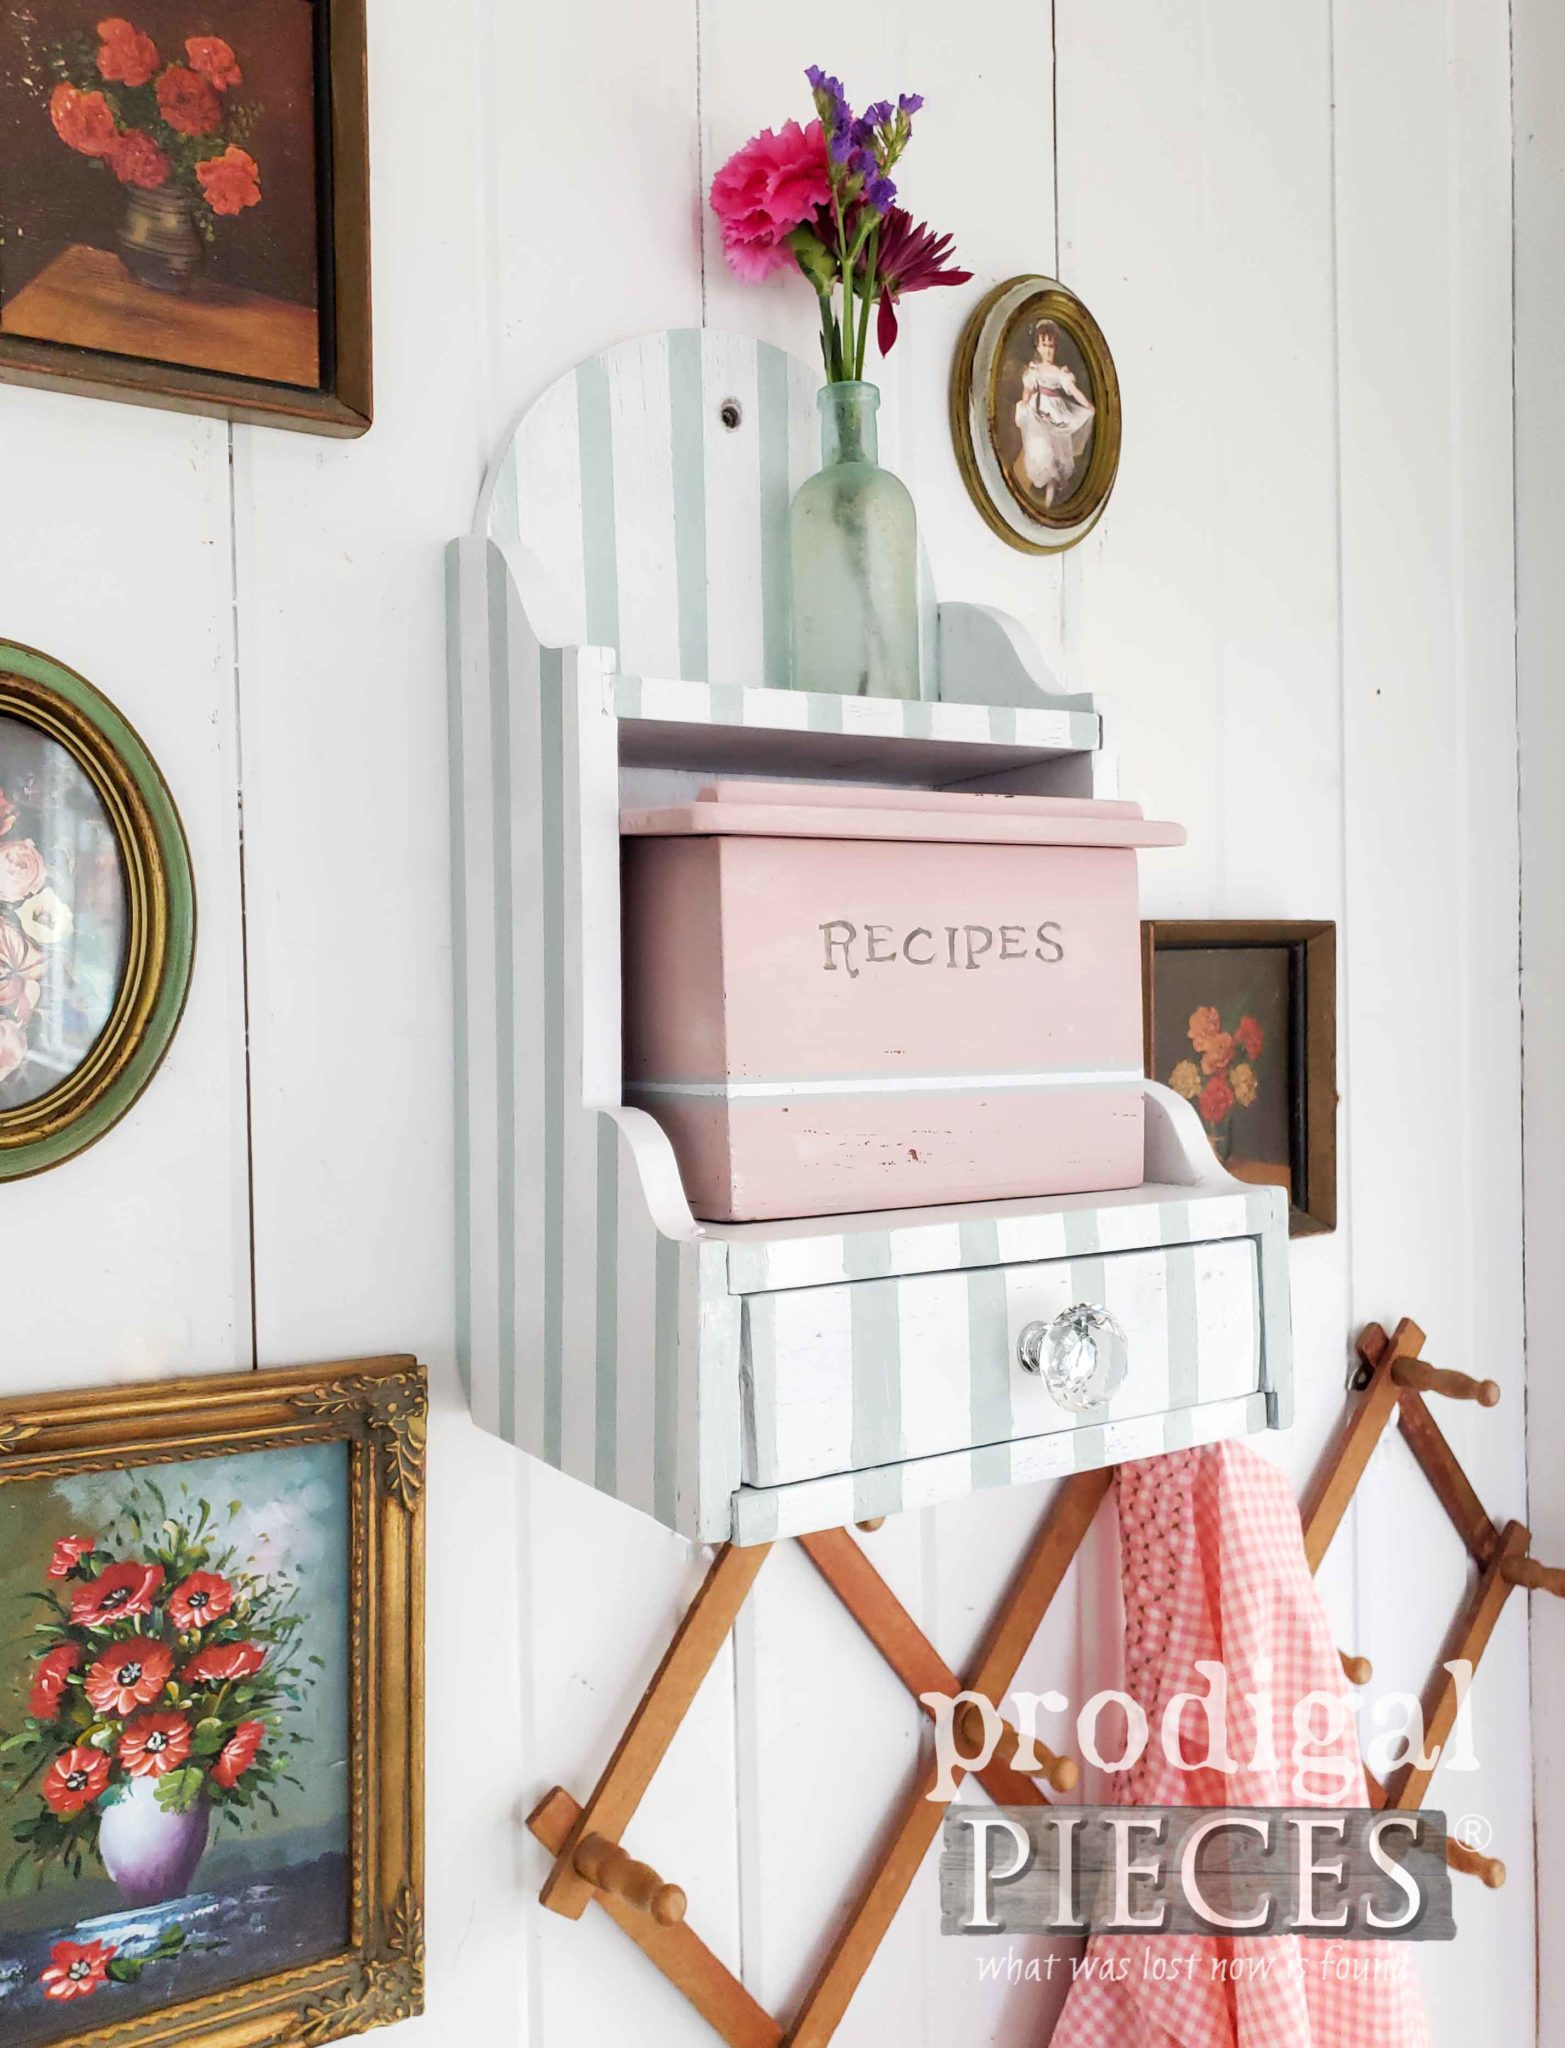 Adorable Cottage Style Recipe Box with Aqua Stripes and Pink by Larissa of Prodigal Pieces | prodigalpieces.com